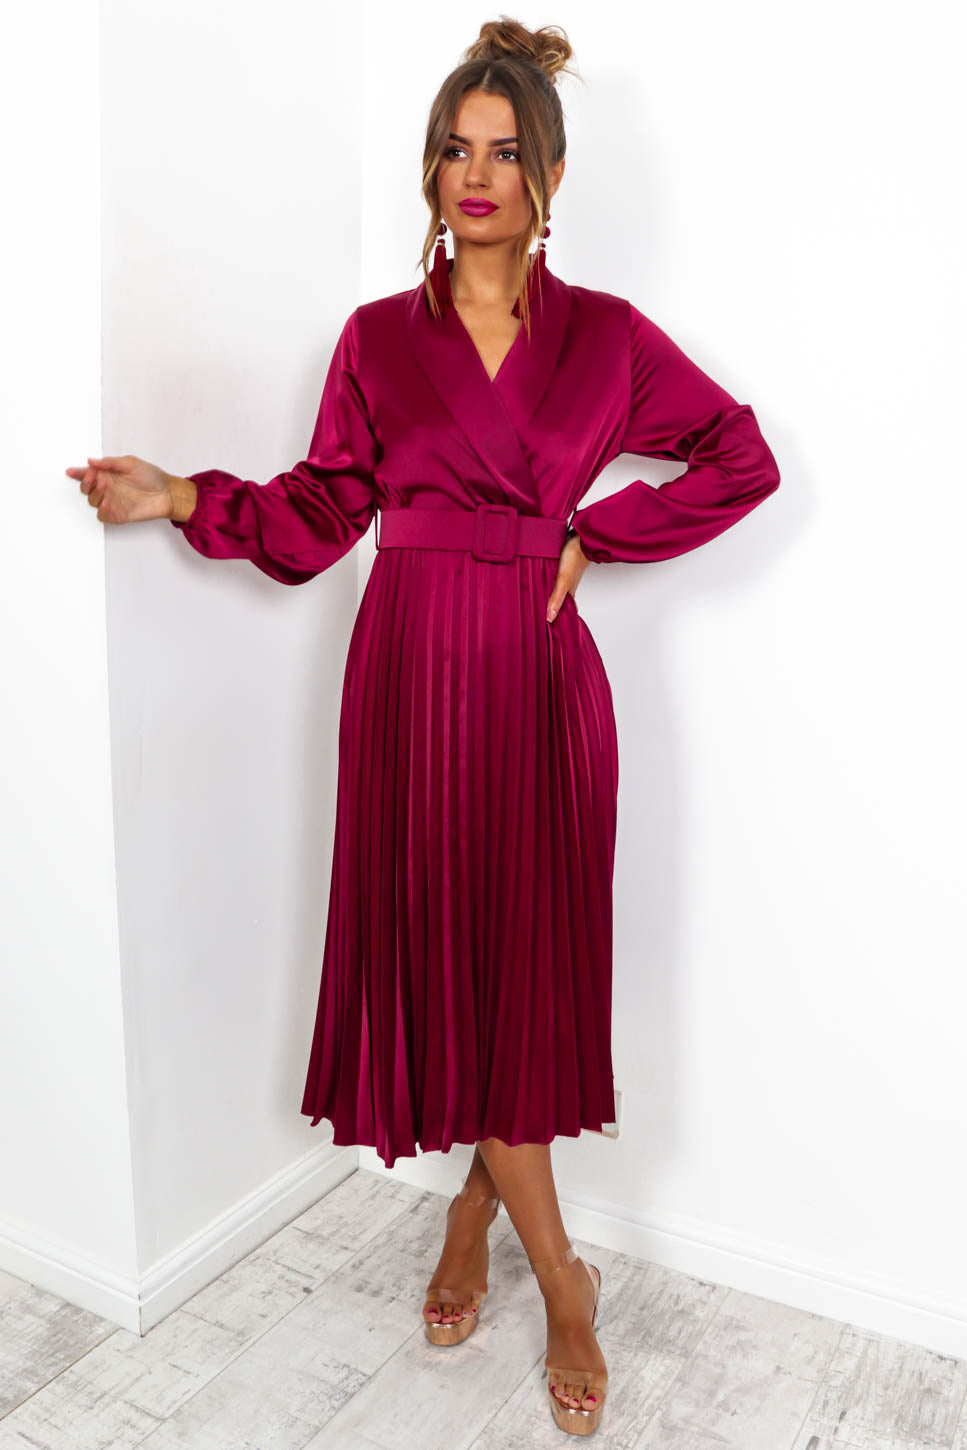 Norma Jean - Maxi Dress In WINE